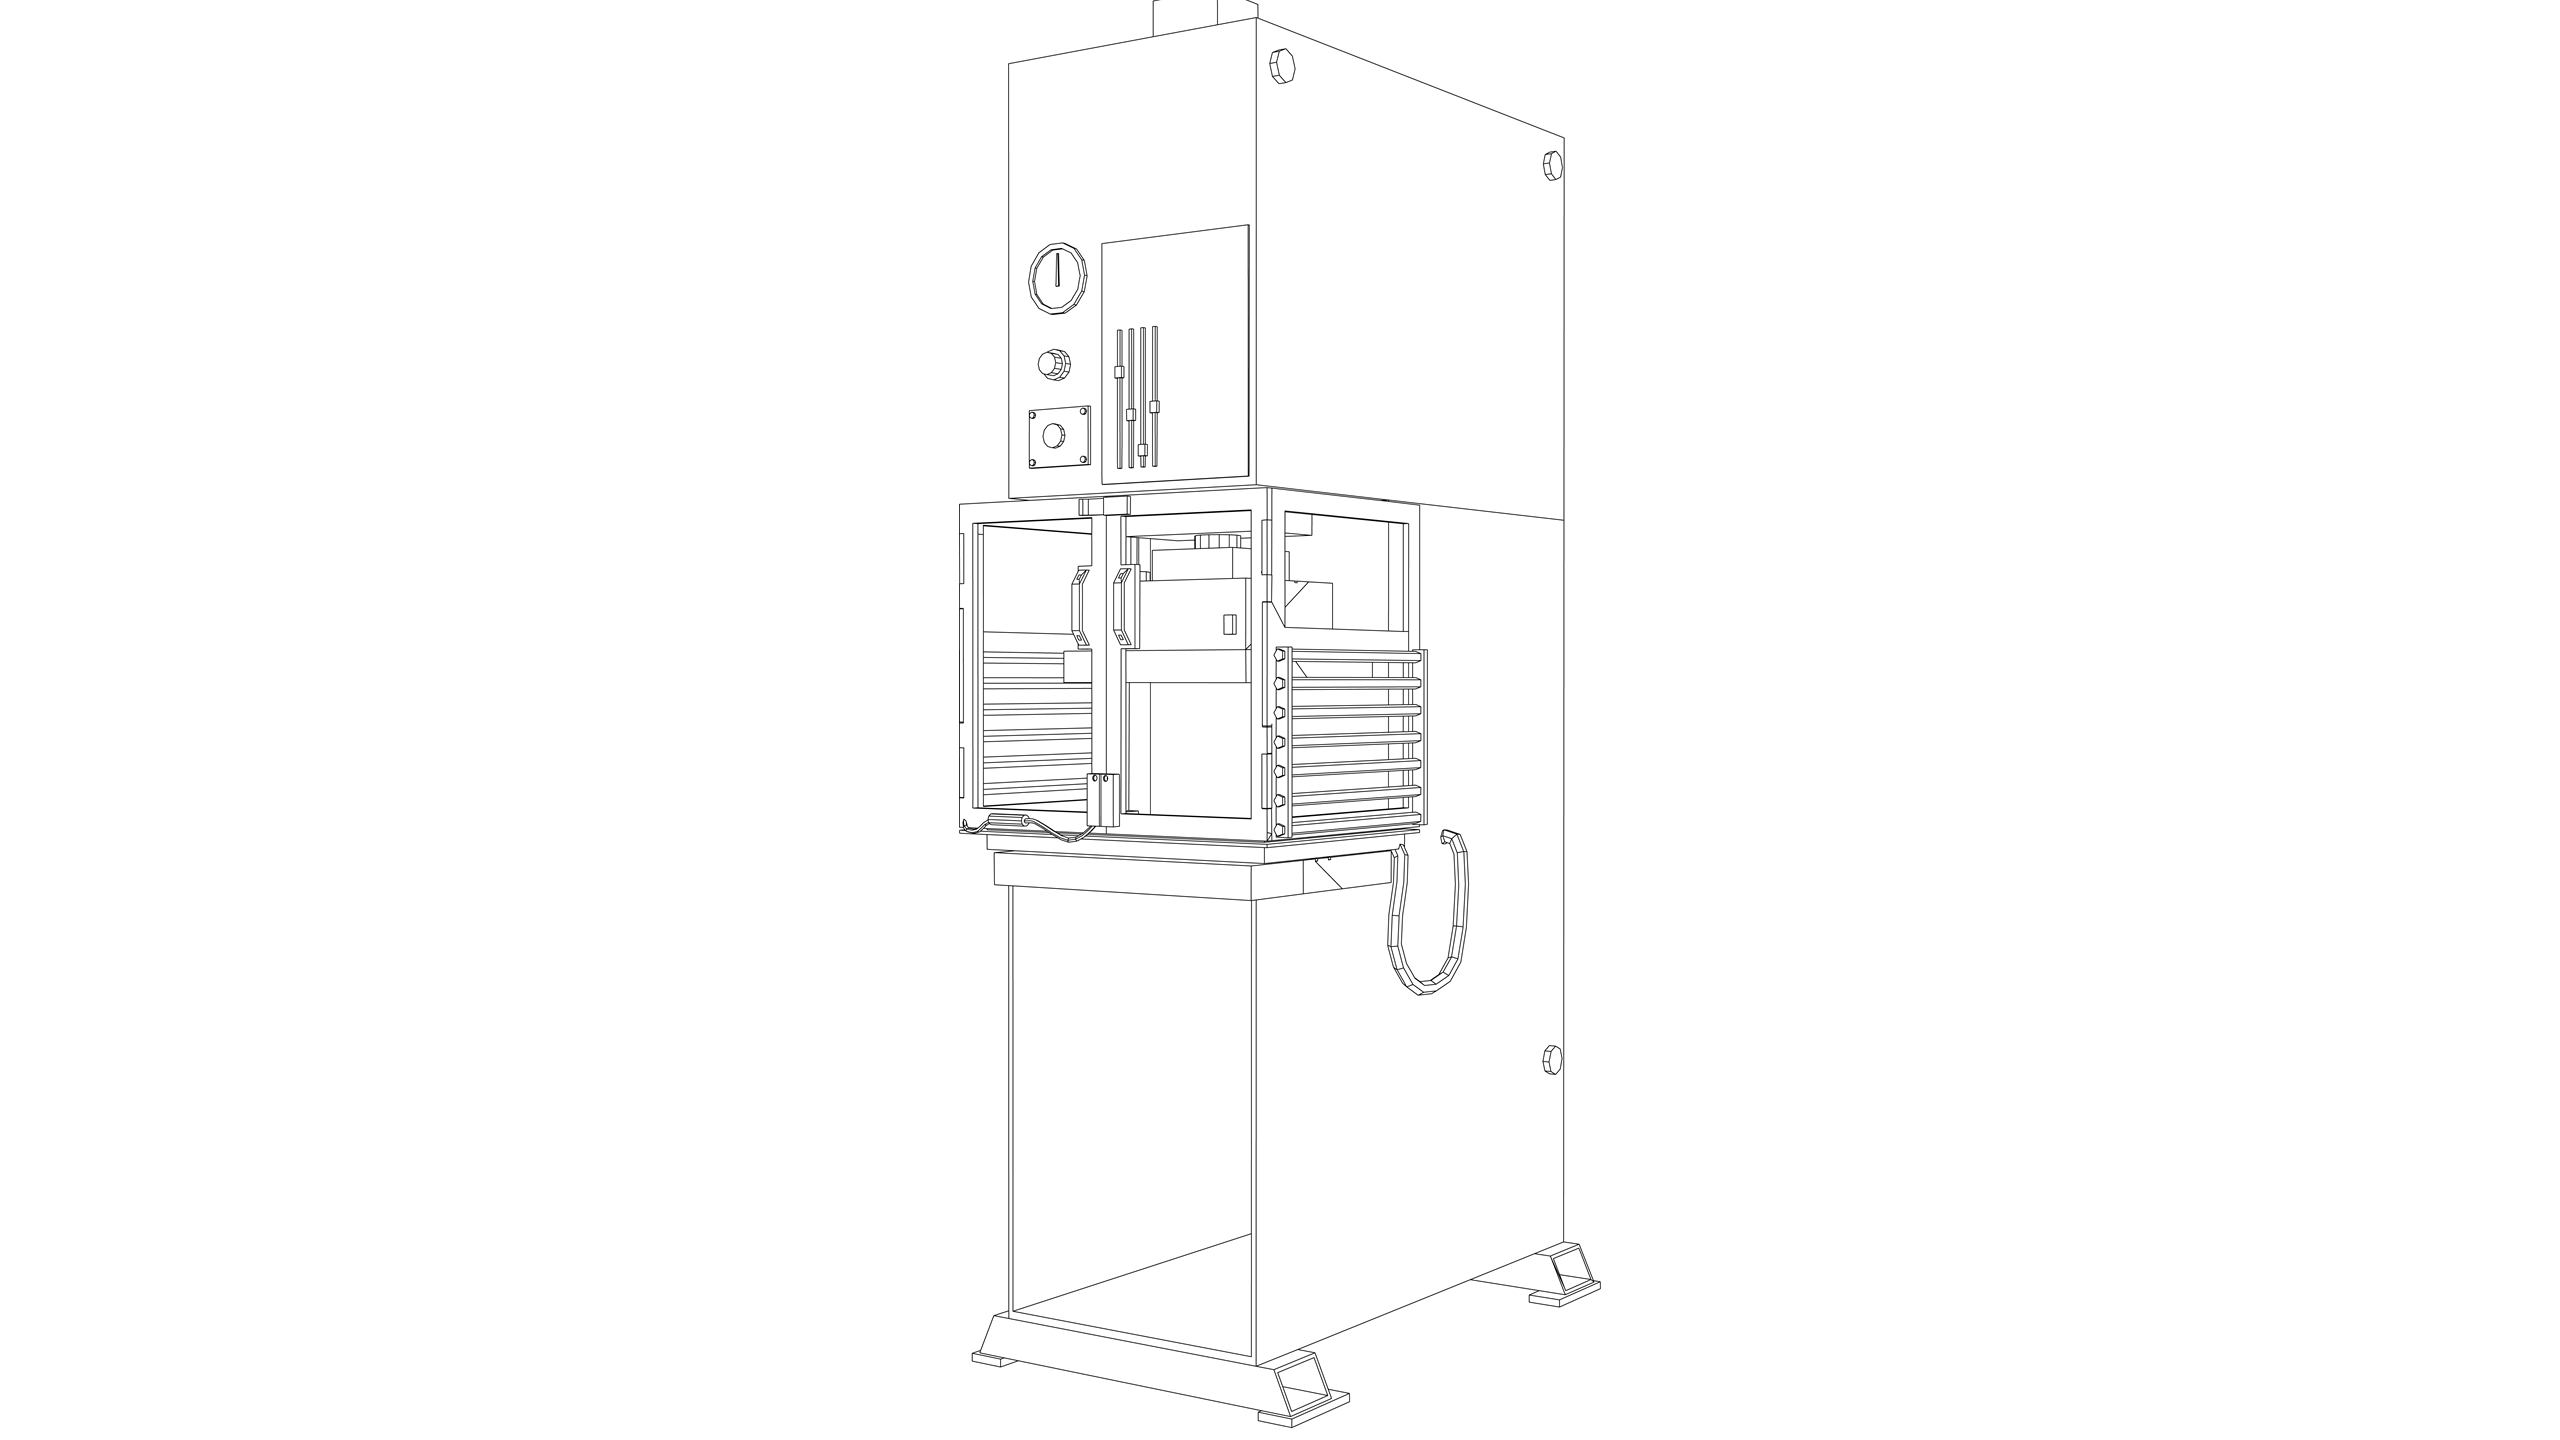 Vector Image: Hydraulic Press (Interlocking Guards)